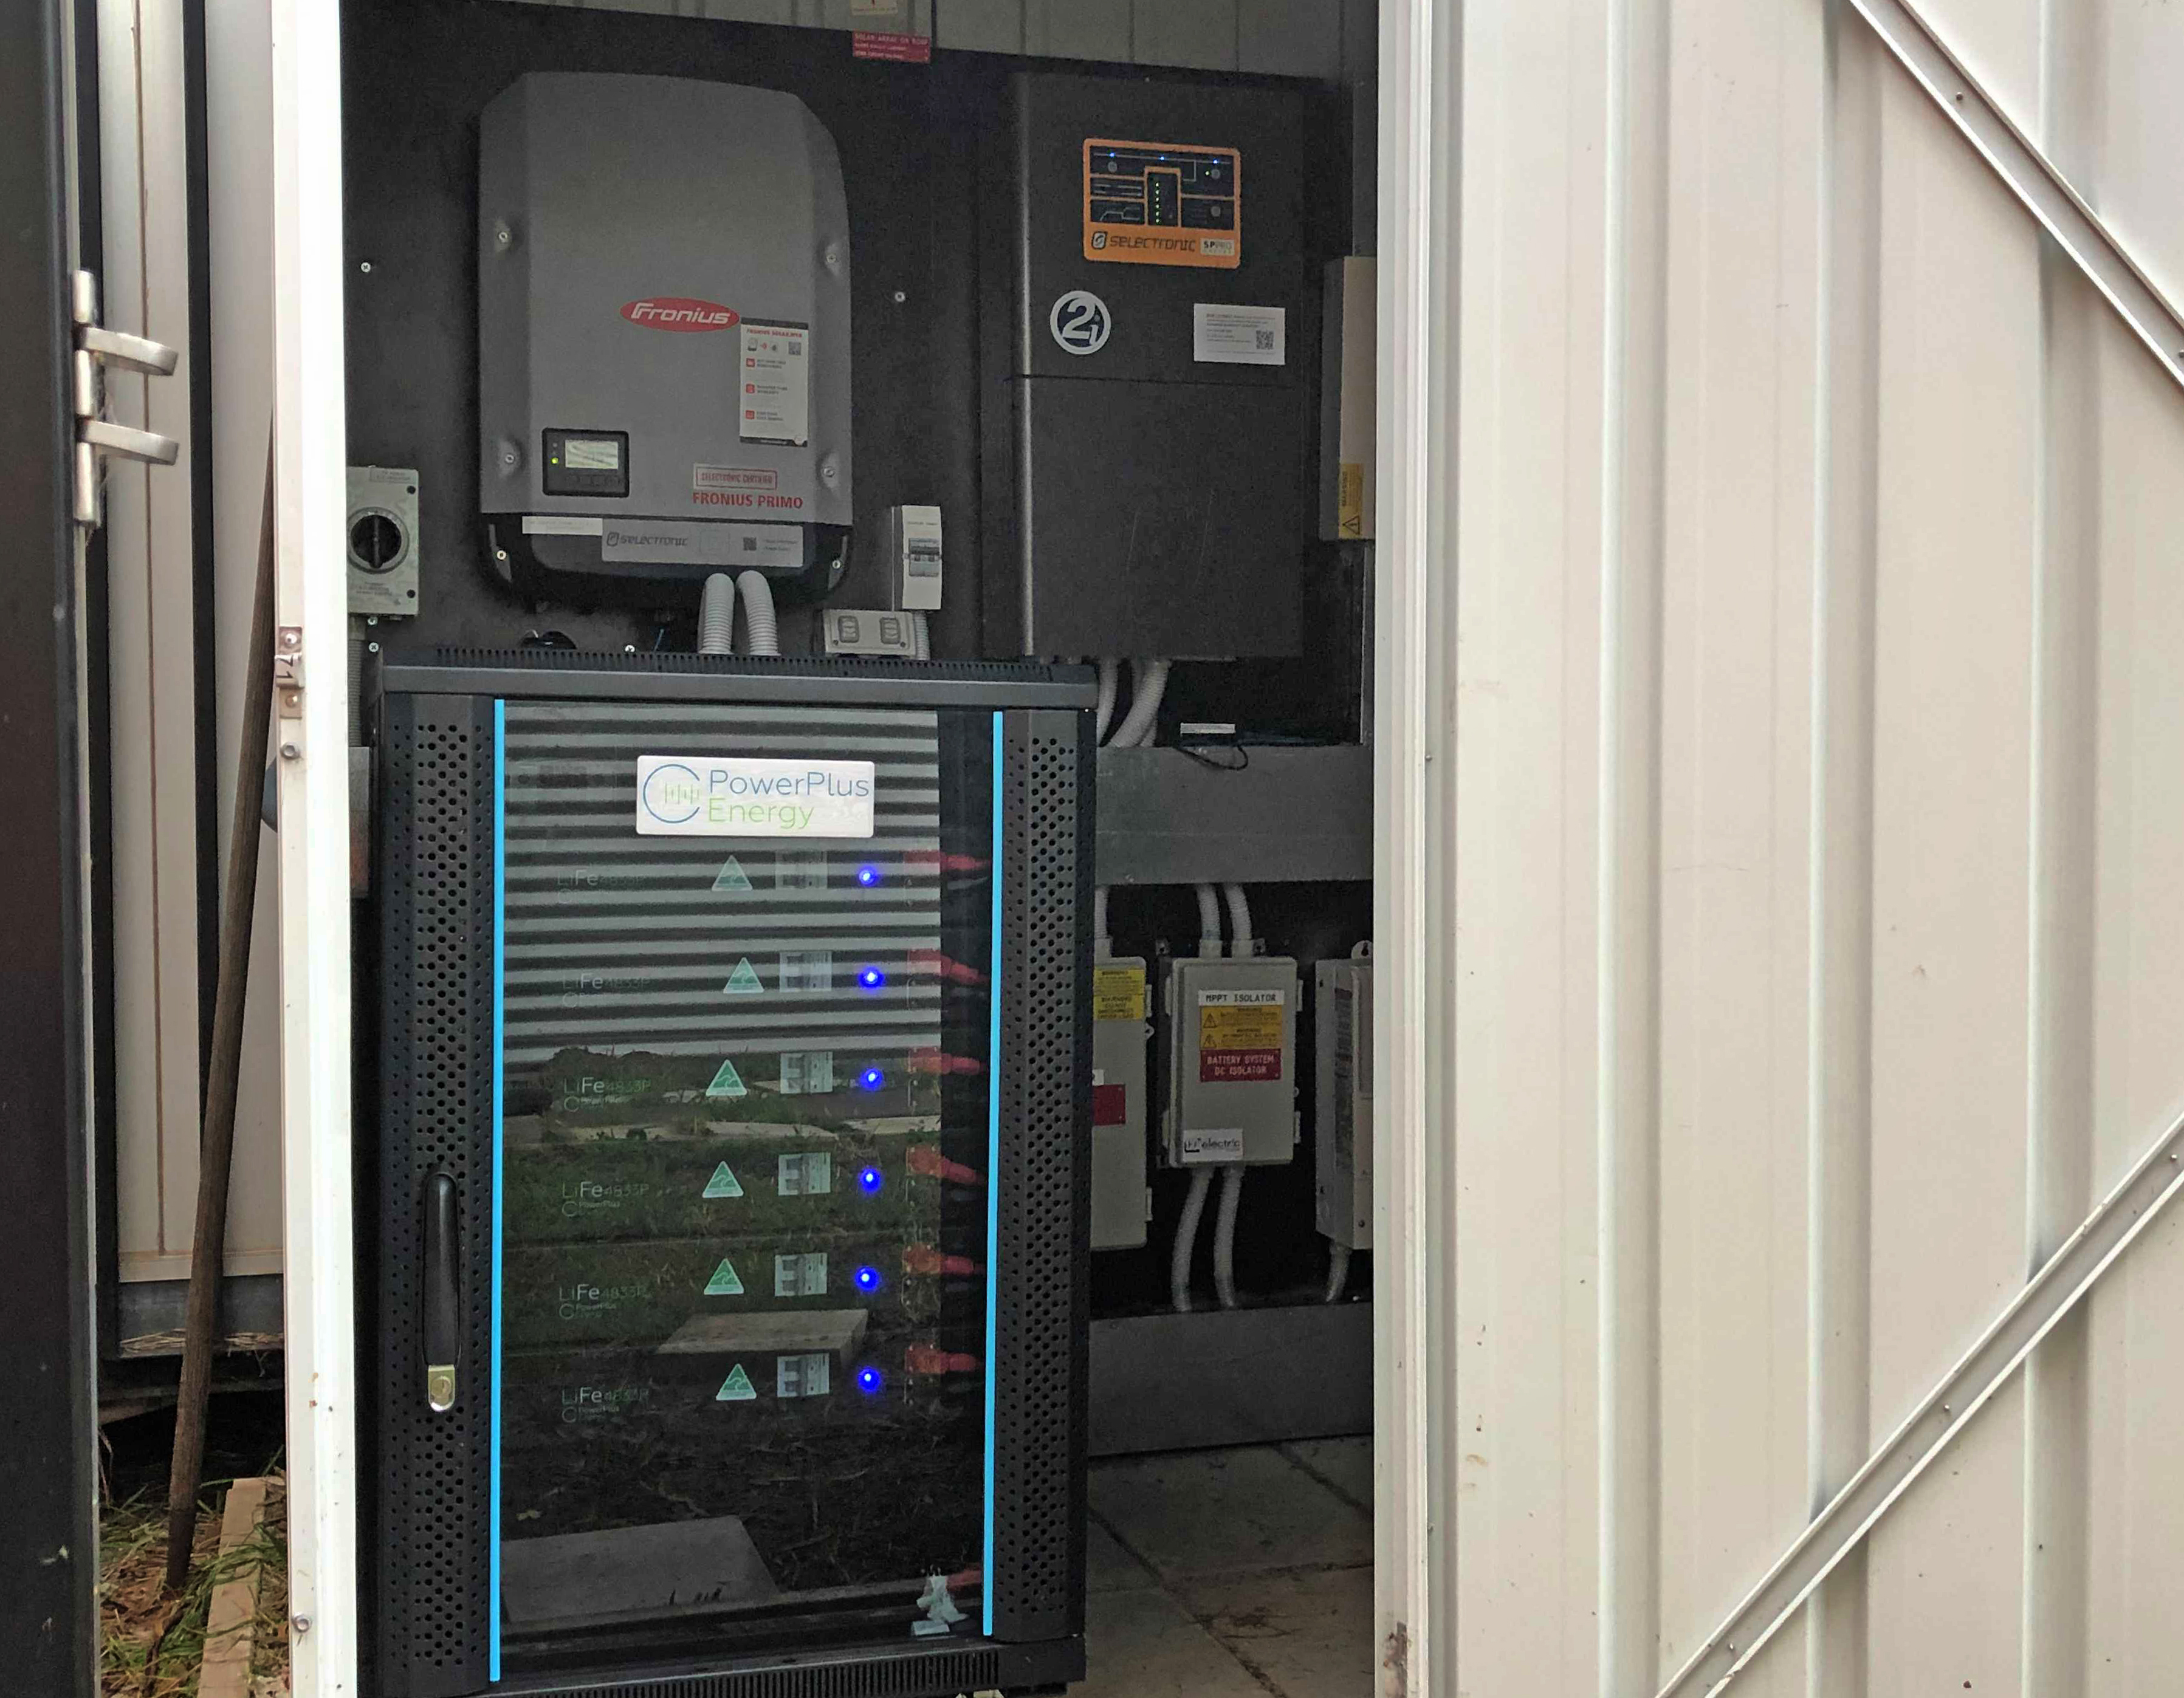 Using Aussie Made PowerPlus batteries to take control of their energy needs